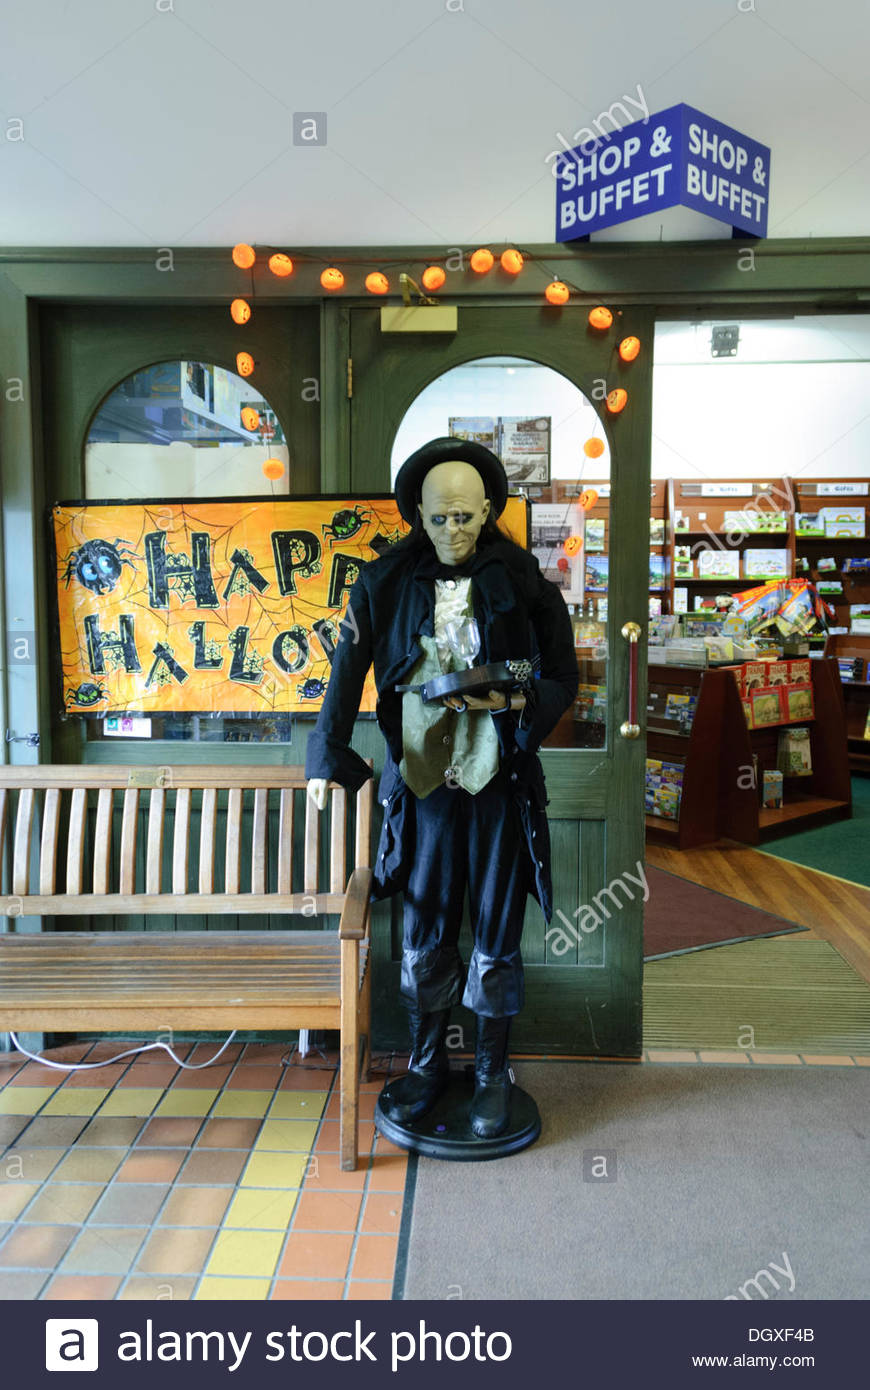 bonessuk sunday october 27 2013 srps greeter welcomes visitors hundreds of people turned out for the steam n scream halloween weekend organised by